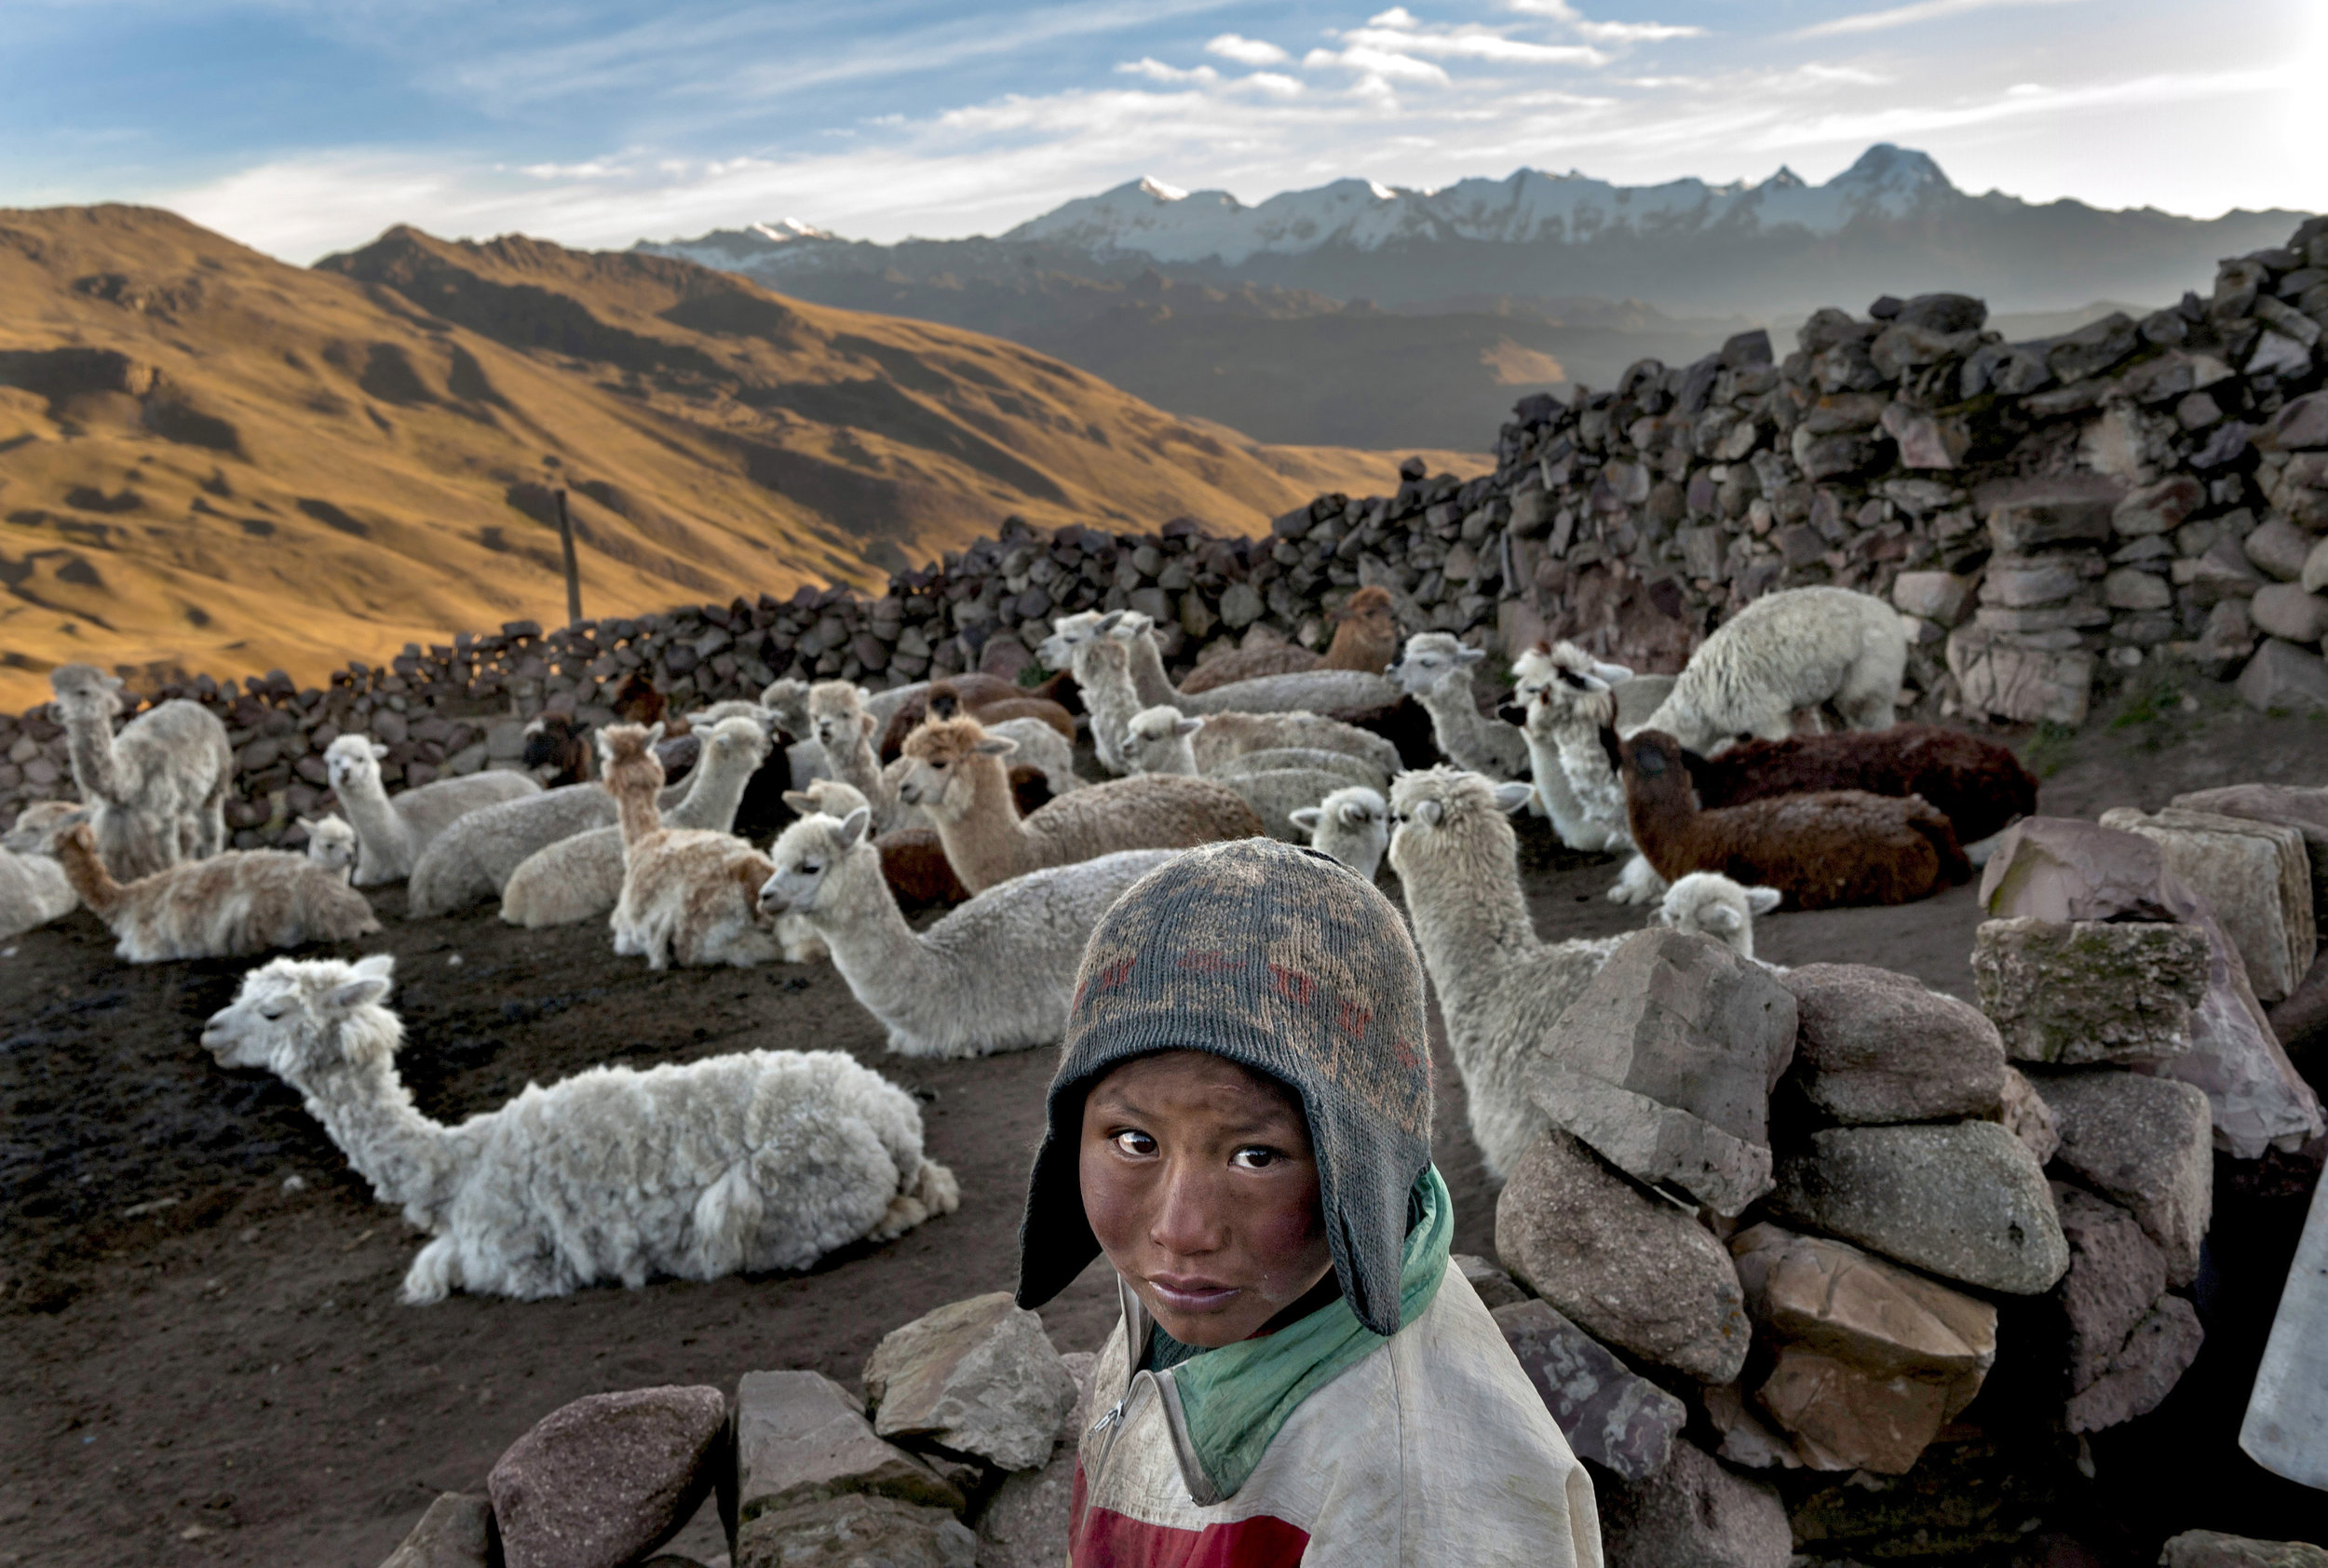 CHILD HERDER IN BOLIVIA - Following the death of his father, Alvaro Kalancha Quispe, 9, helps his family survive by herding. He opens the gate to the stone pen that holds the family's alpacas and llamas each morning so they can graze throughout the hillsides during the day. He then heads off to school, but must roundup the animals in the evening, in the Akamani mountain range of Bolivia.